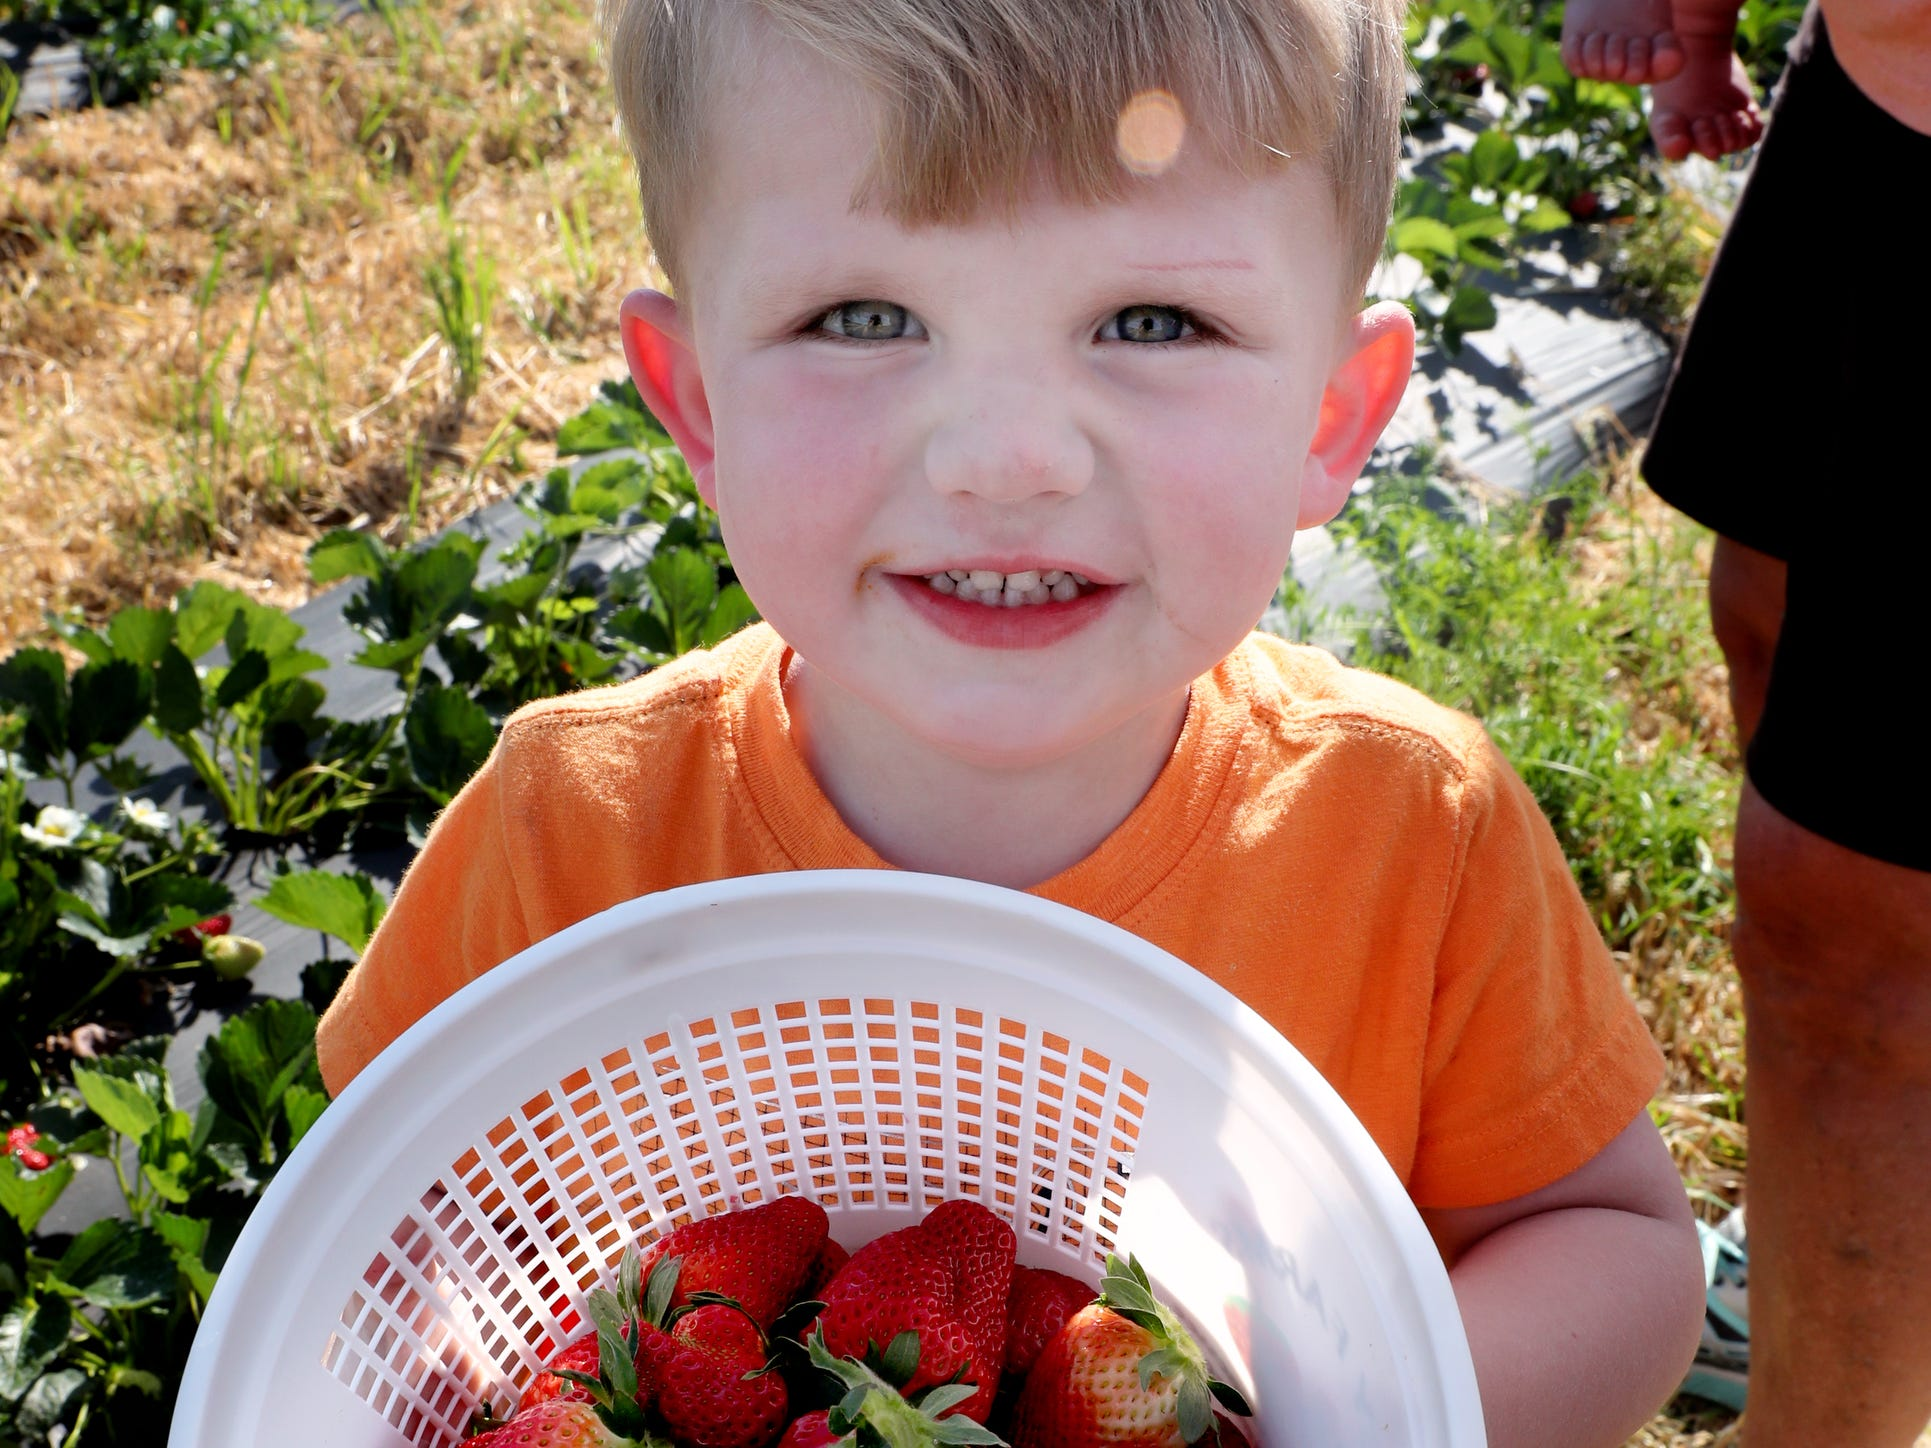 Rhett Trotter, 3, shows off his basket of fresh strawberries on Wednesday April 24, 2019, at Batey Farms in Murfreesboro.